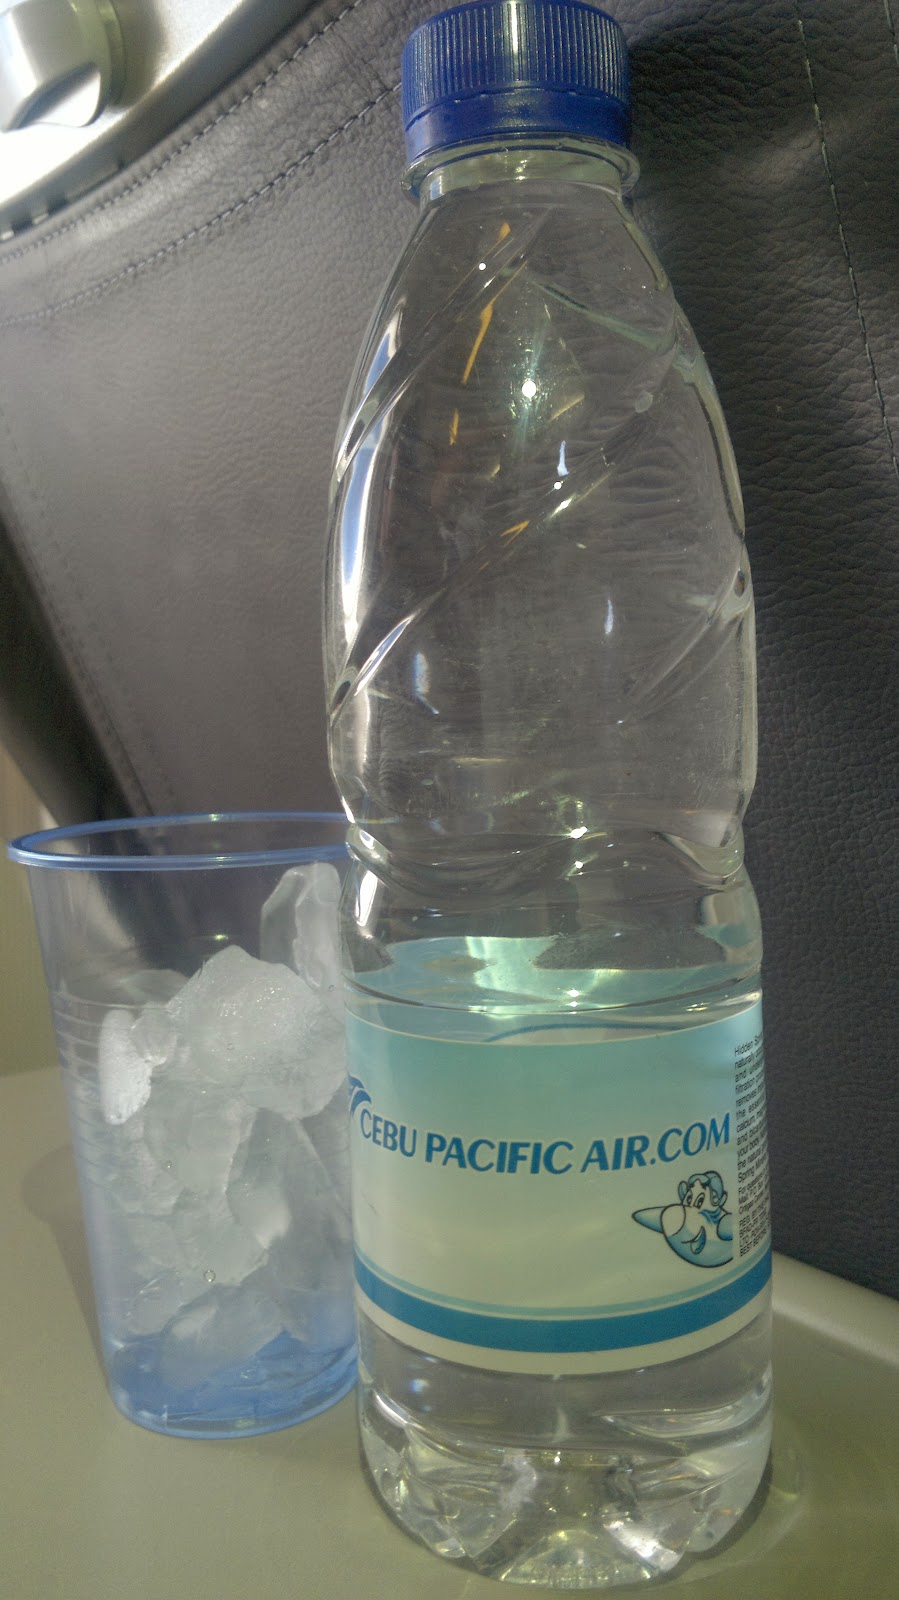 Place: Cebu Pacific Air - Mineral Water